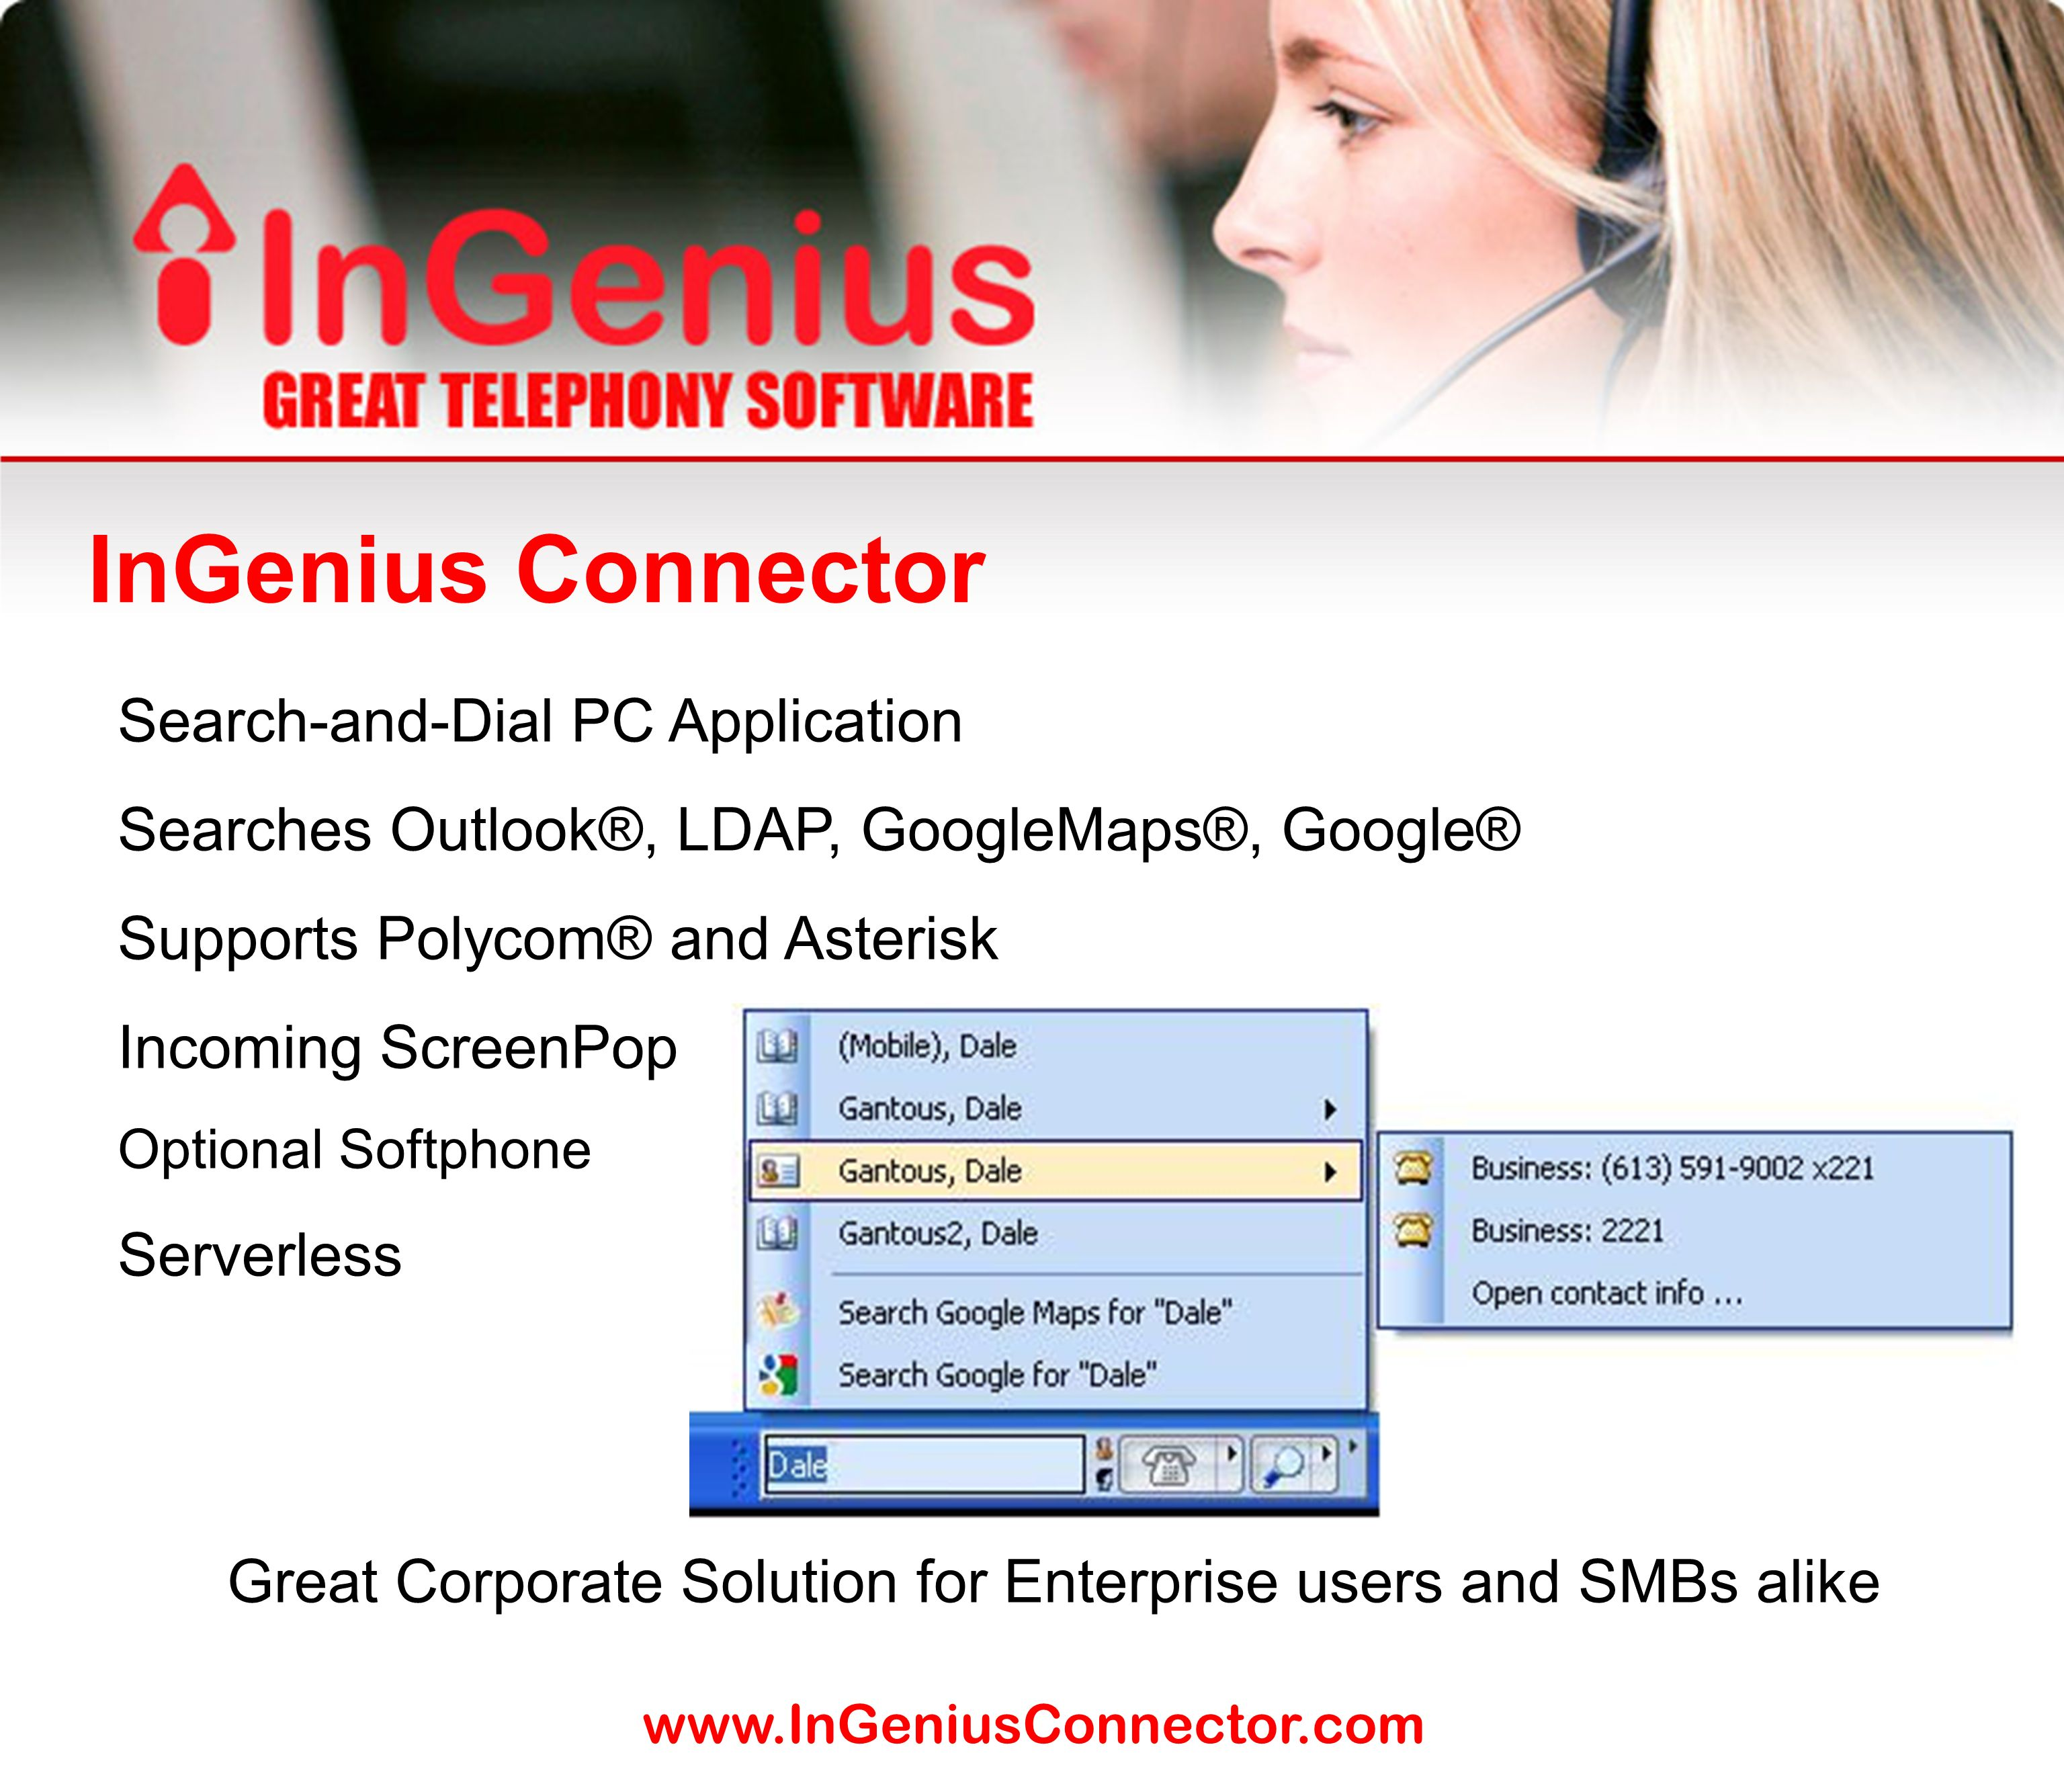 www.InGeniusConnector.com Search-and-Dial PC Application Searches Outlook®, LDAP, GoogleMaps®, Google® Supports Polycom® and Asterisk Incoming ScreenPop Optional Softphone Serverless Great Corporate Solution for Enterprise users and SMBs alike InGenius Connector